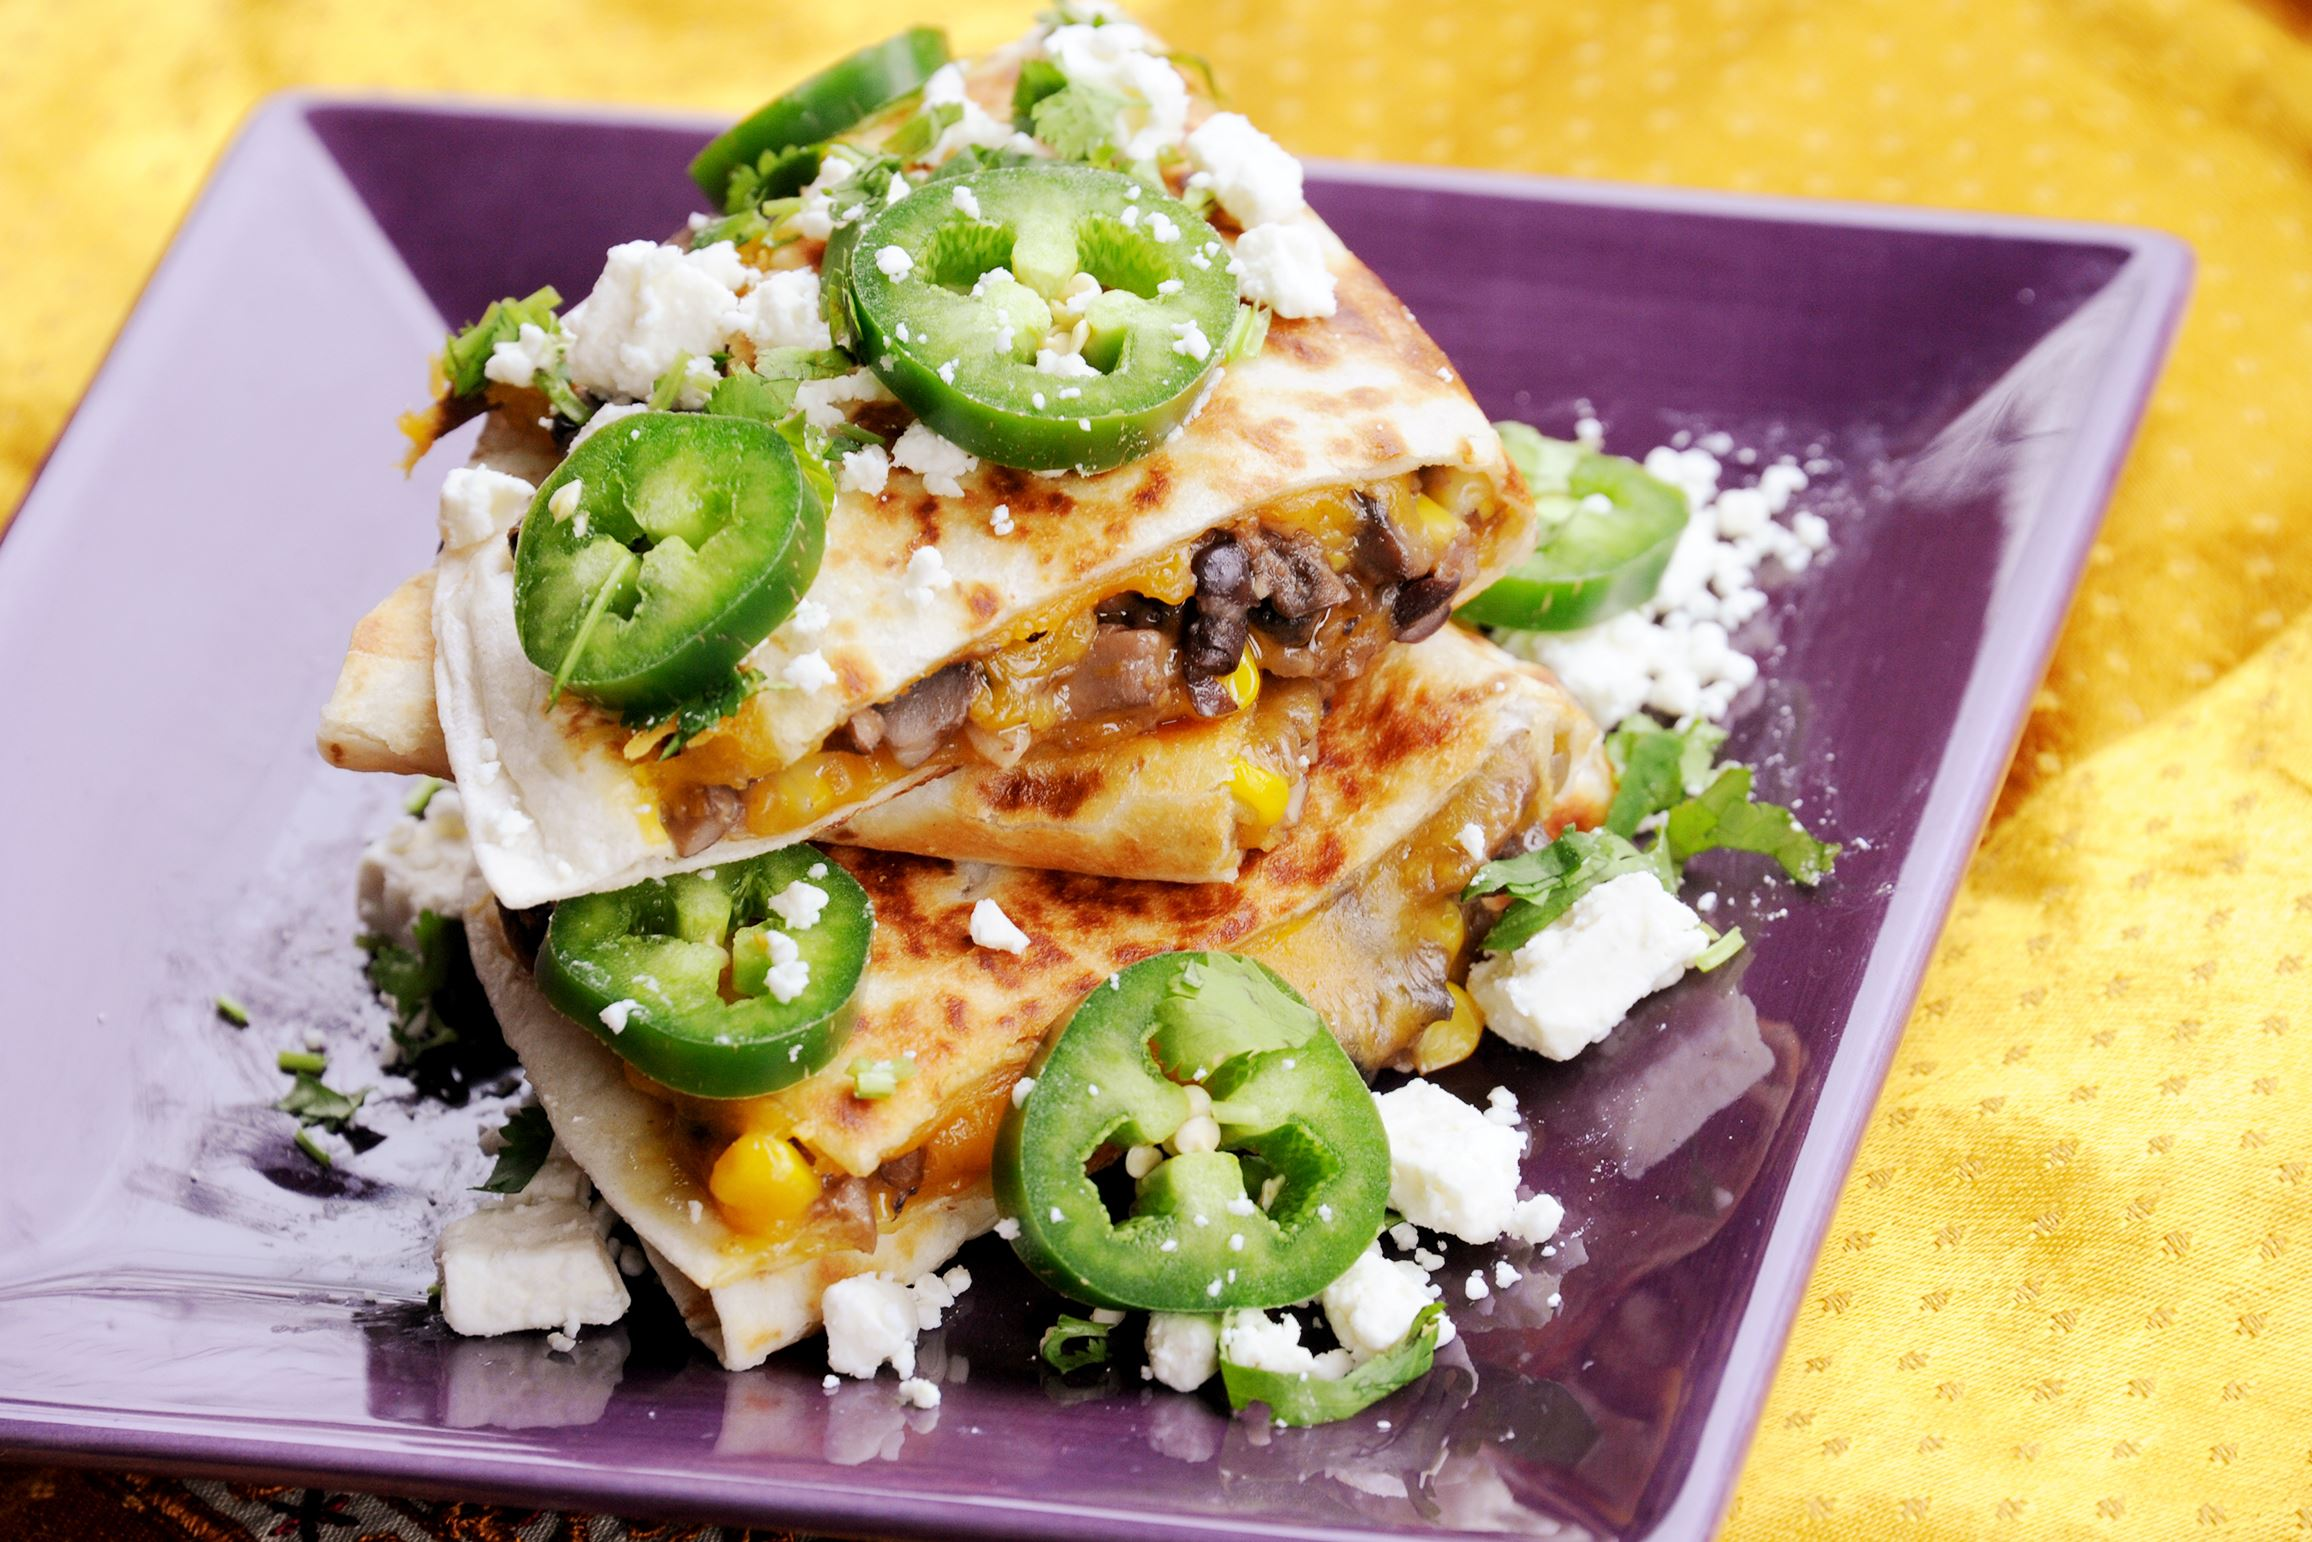 20170330lf-Lent03-1 St. Rita Quesadillas are filled with mushroom, onion, black beans, corn and cheddar cheese, and topped with feta, cilantro and jalapeno slices.